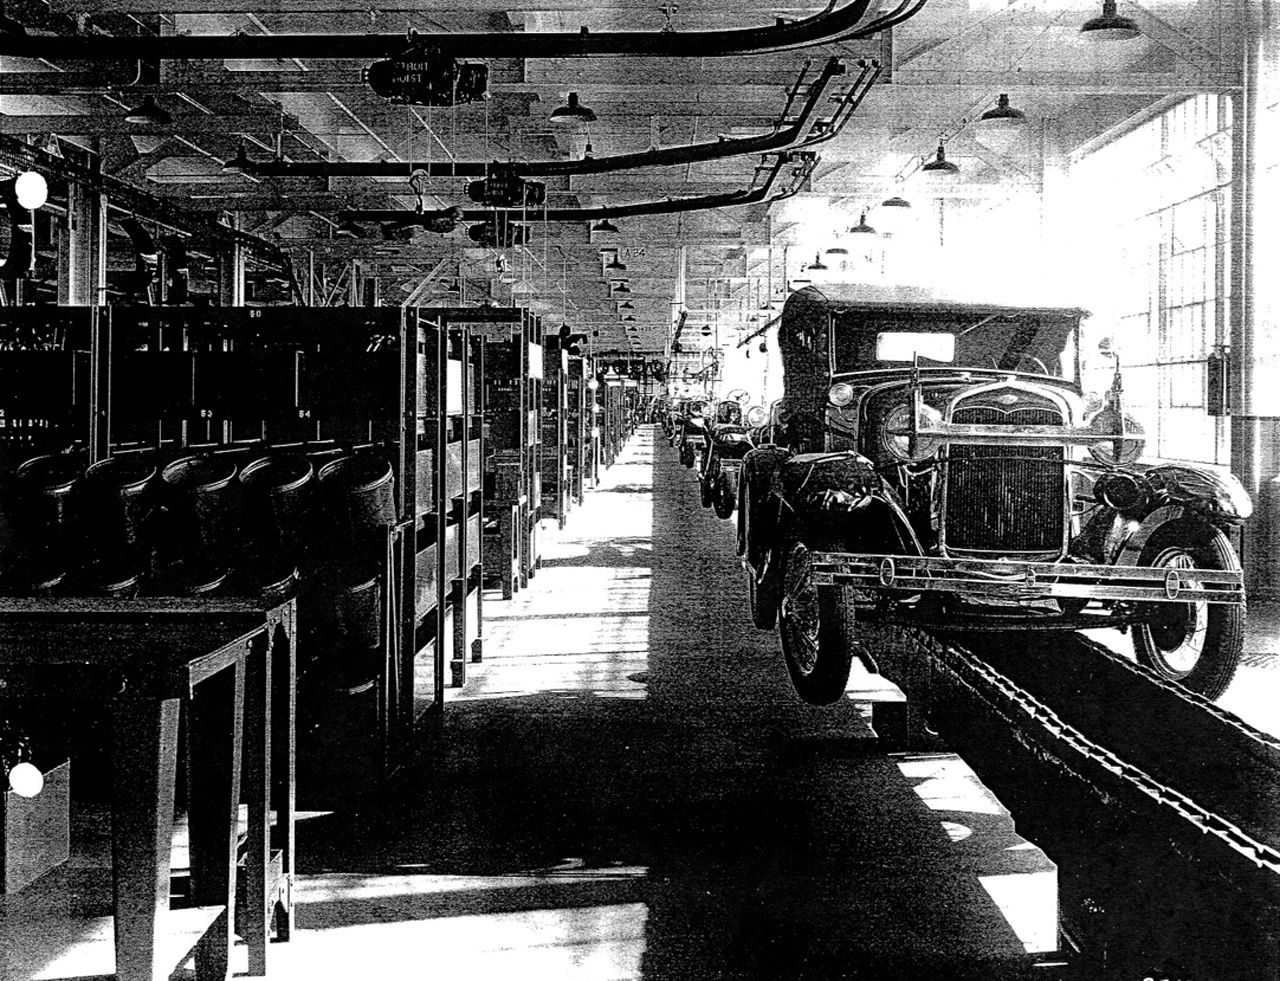 henry ford invented the assembly line the assembly line is where a product is made one step at. Black Bedroom Furniture Sets. Home Design Ideas